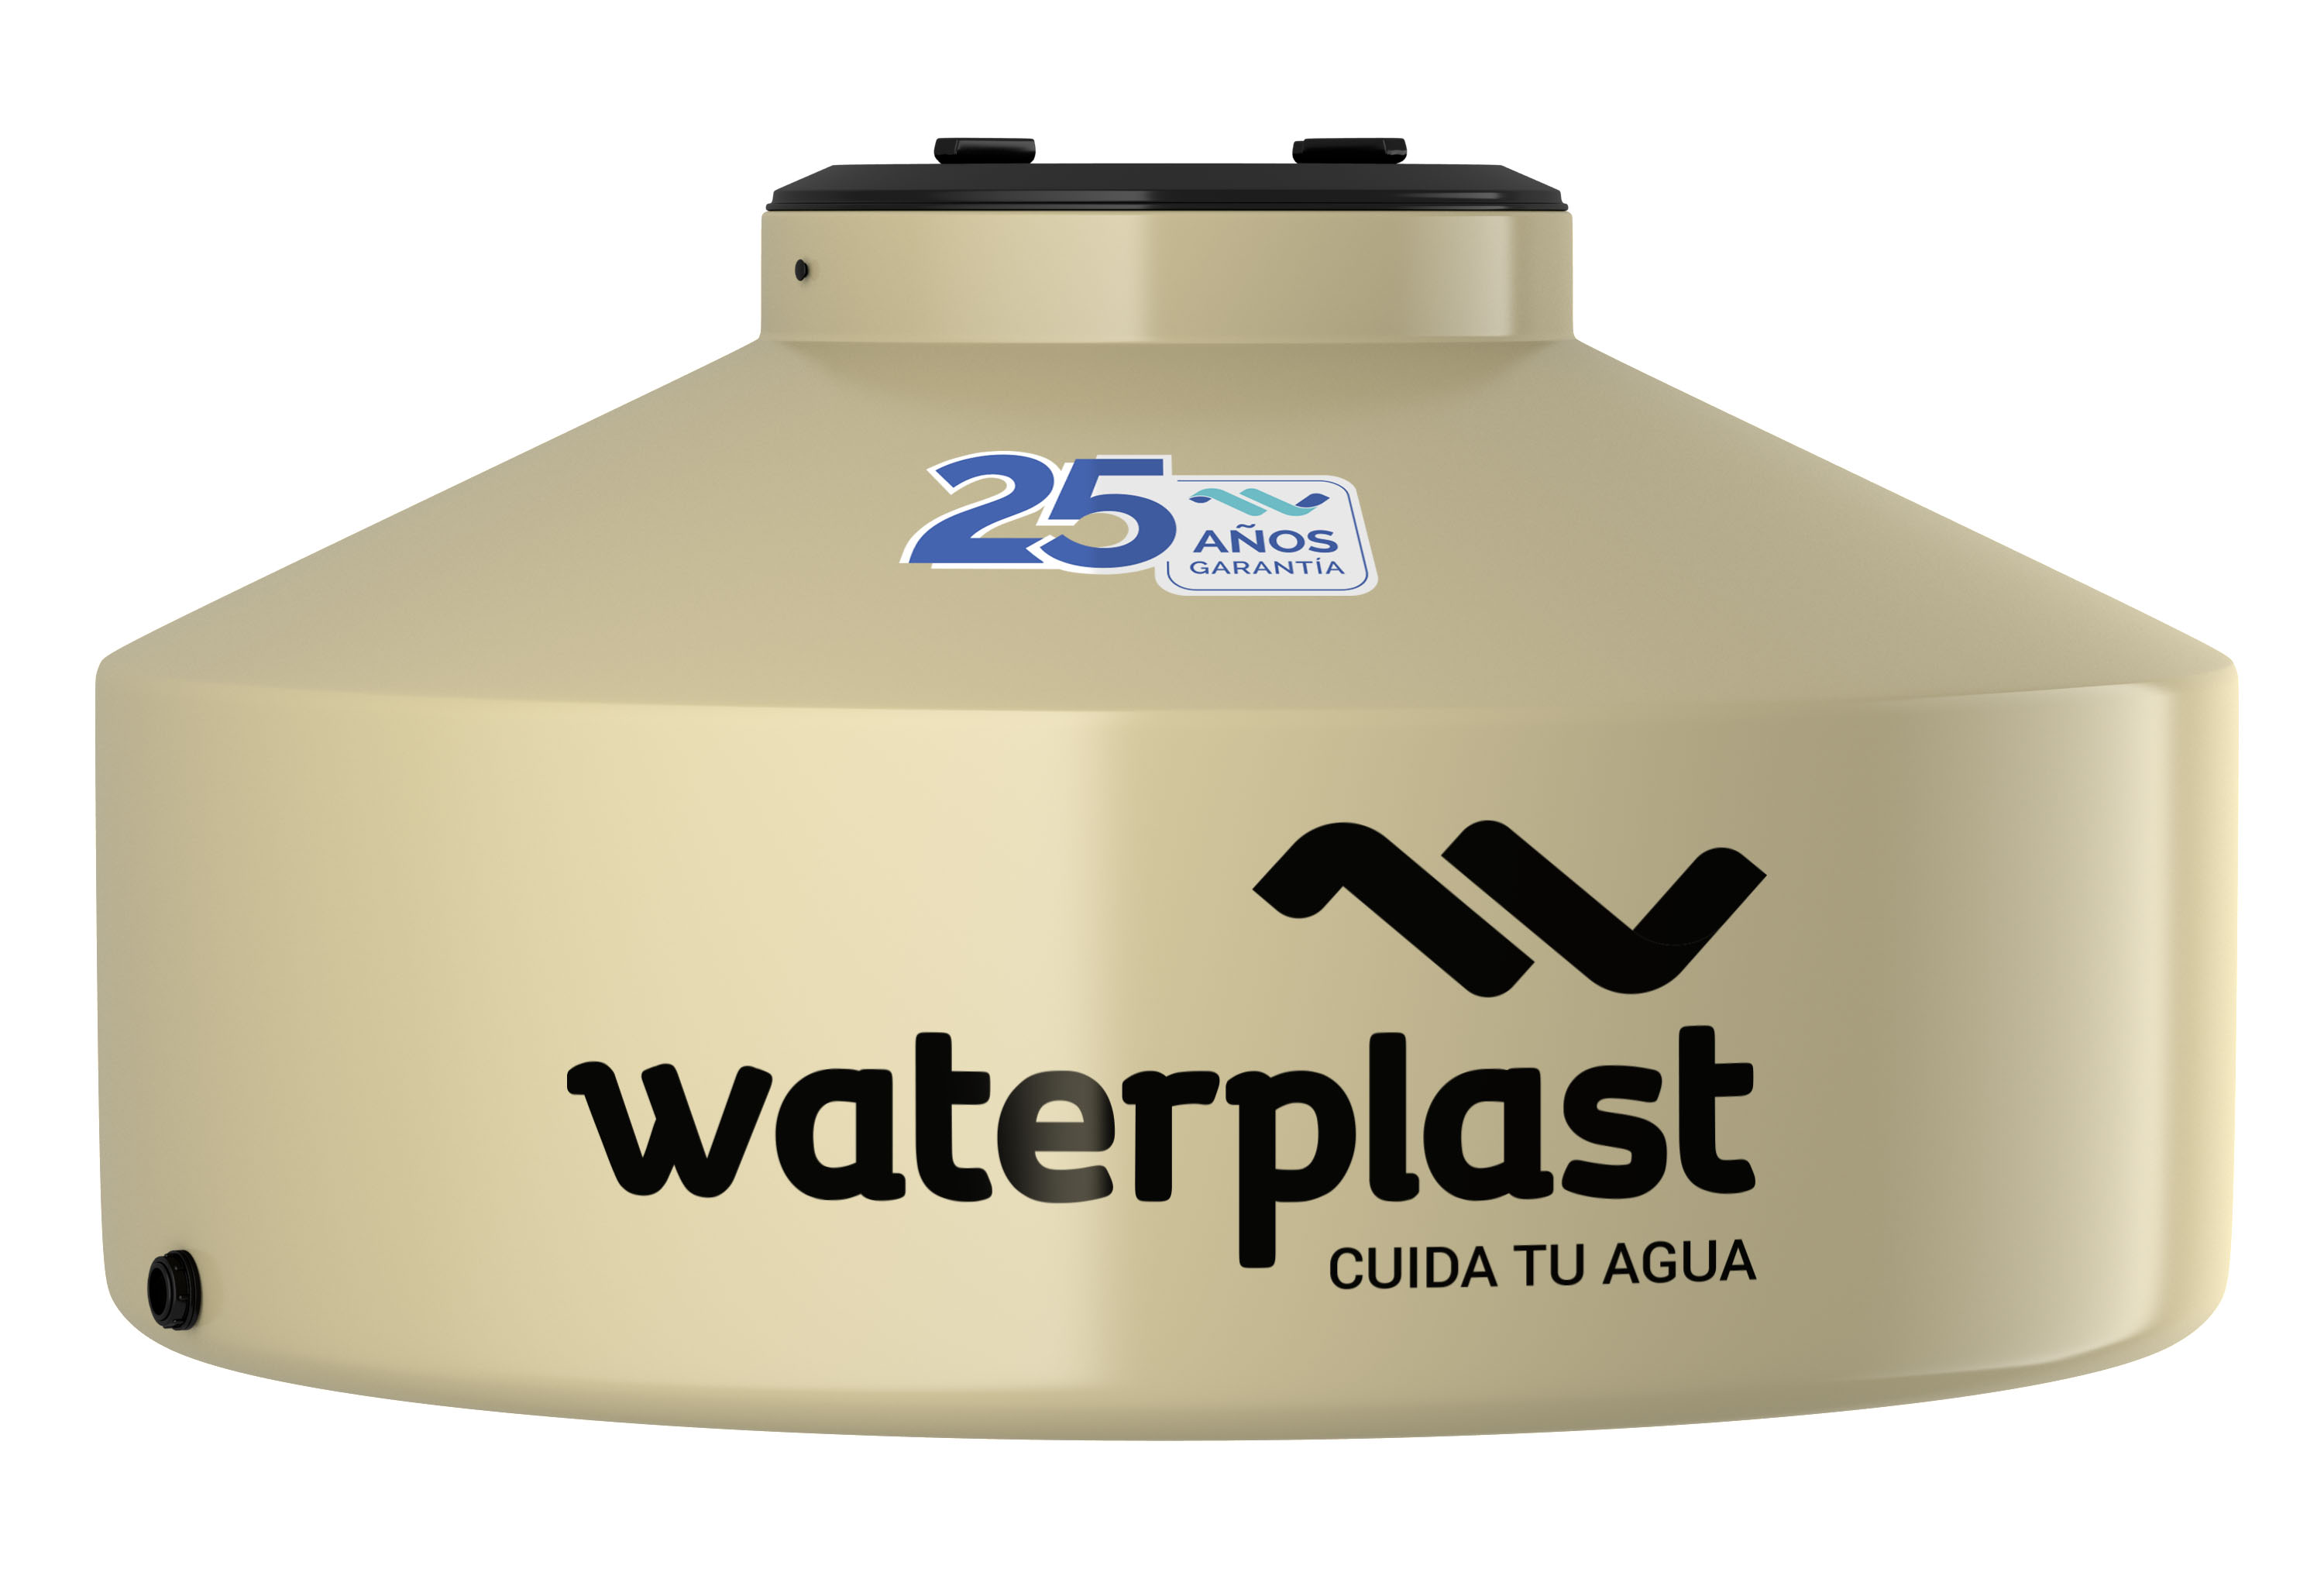 Tanque De Agua Tricapa Patagonico Waterplast 1000 Lts